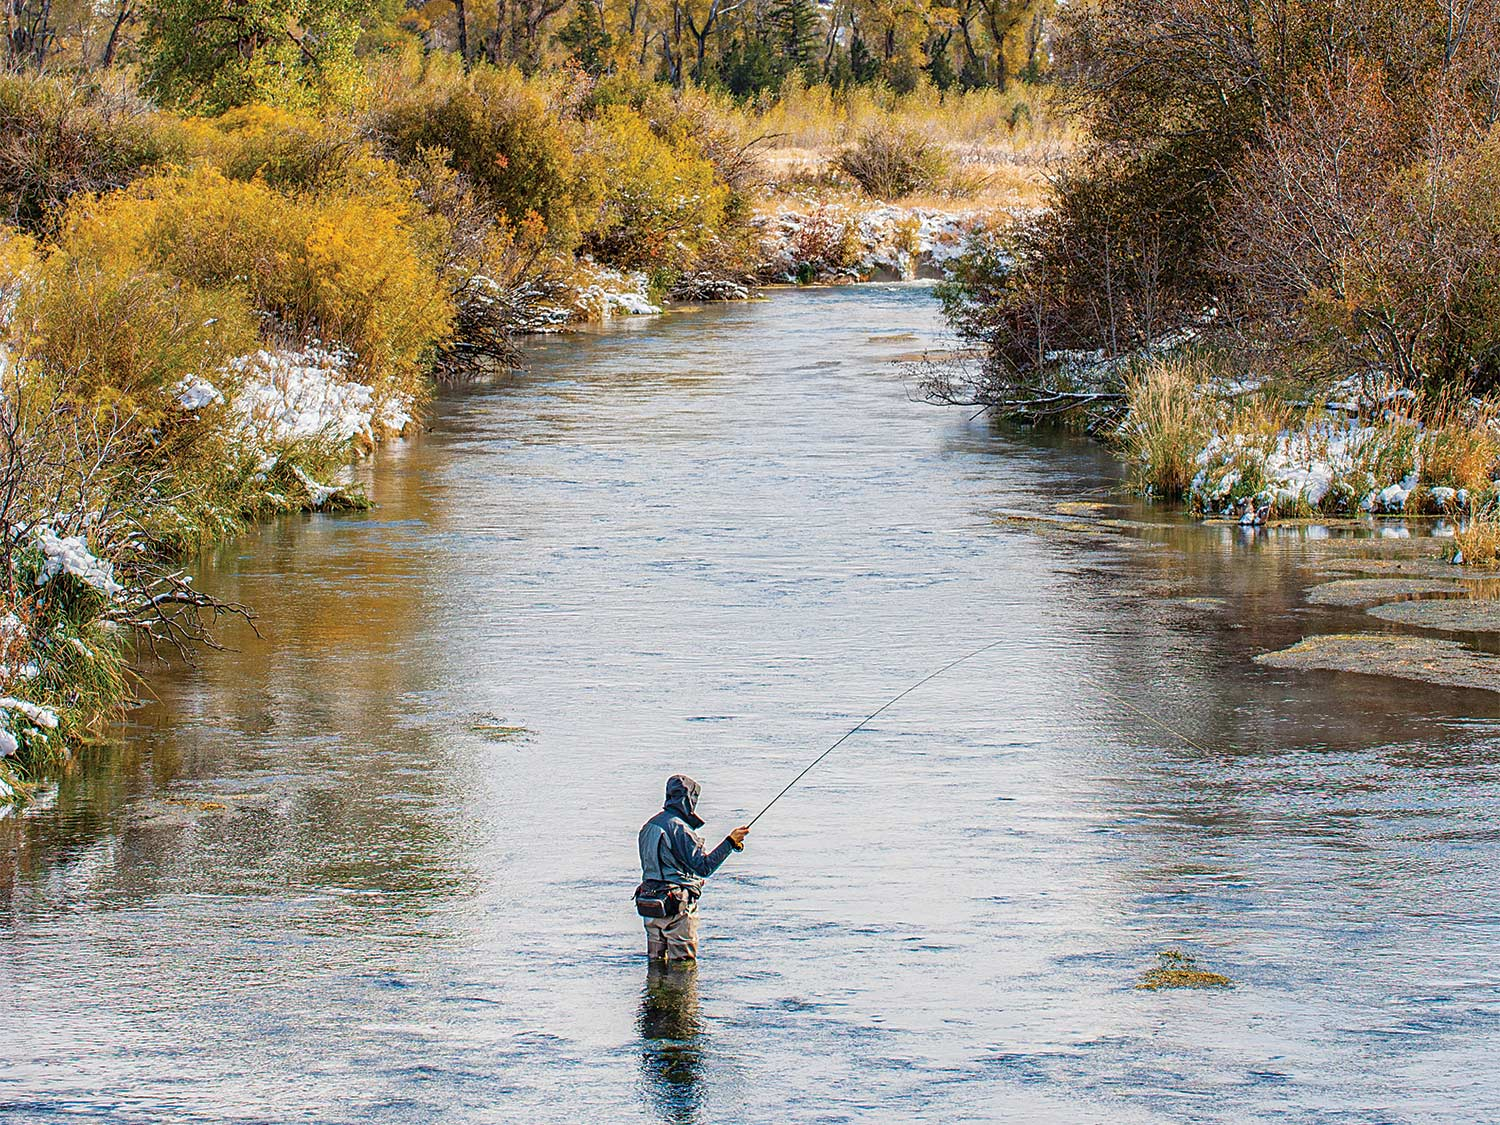 A fly angler fishing for steelhead trout in a stream.